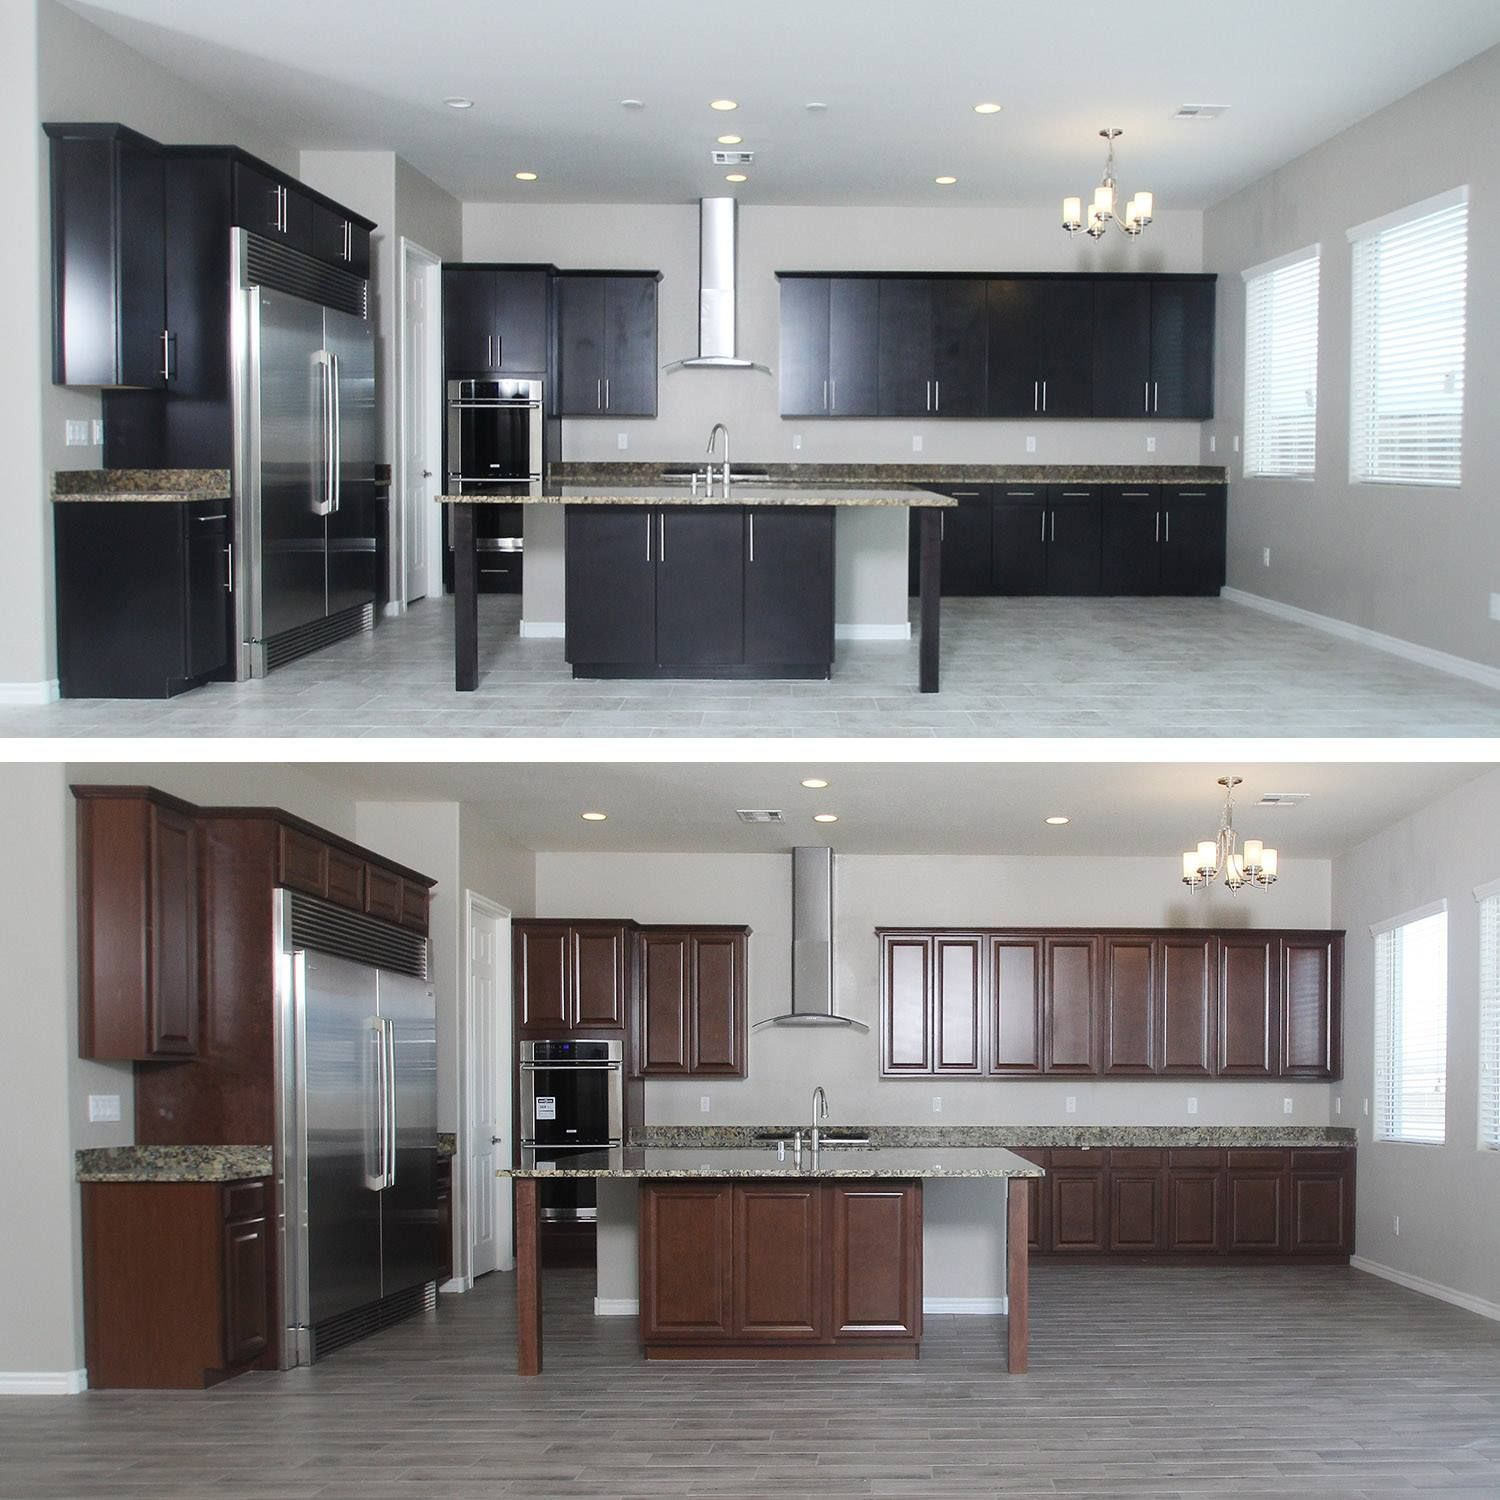 From The Cabinets To The Floor Which Kitchen Do You Like More Top Or Bottom New Home Builders Home Builders Kitchen